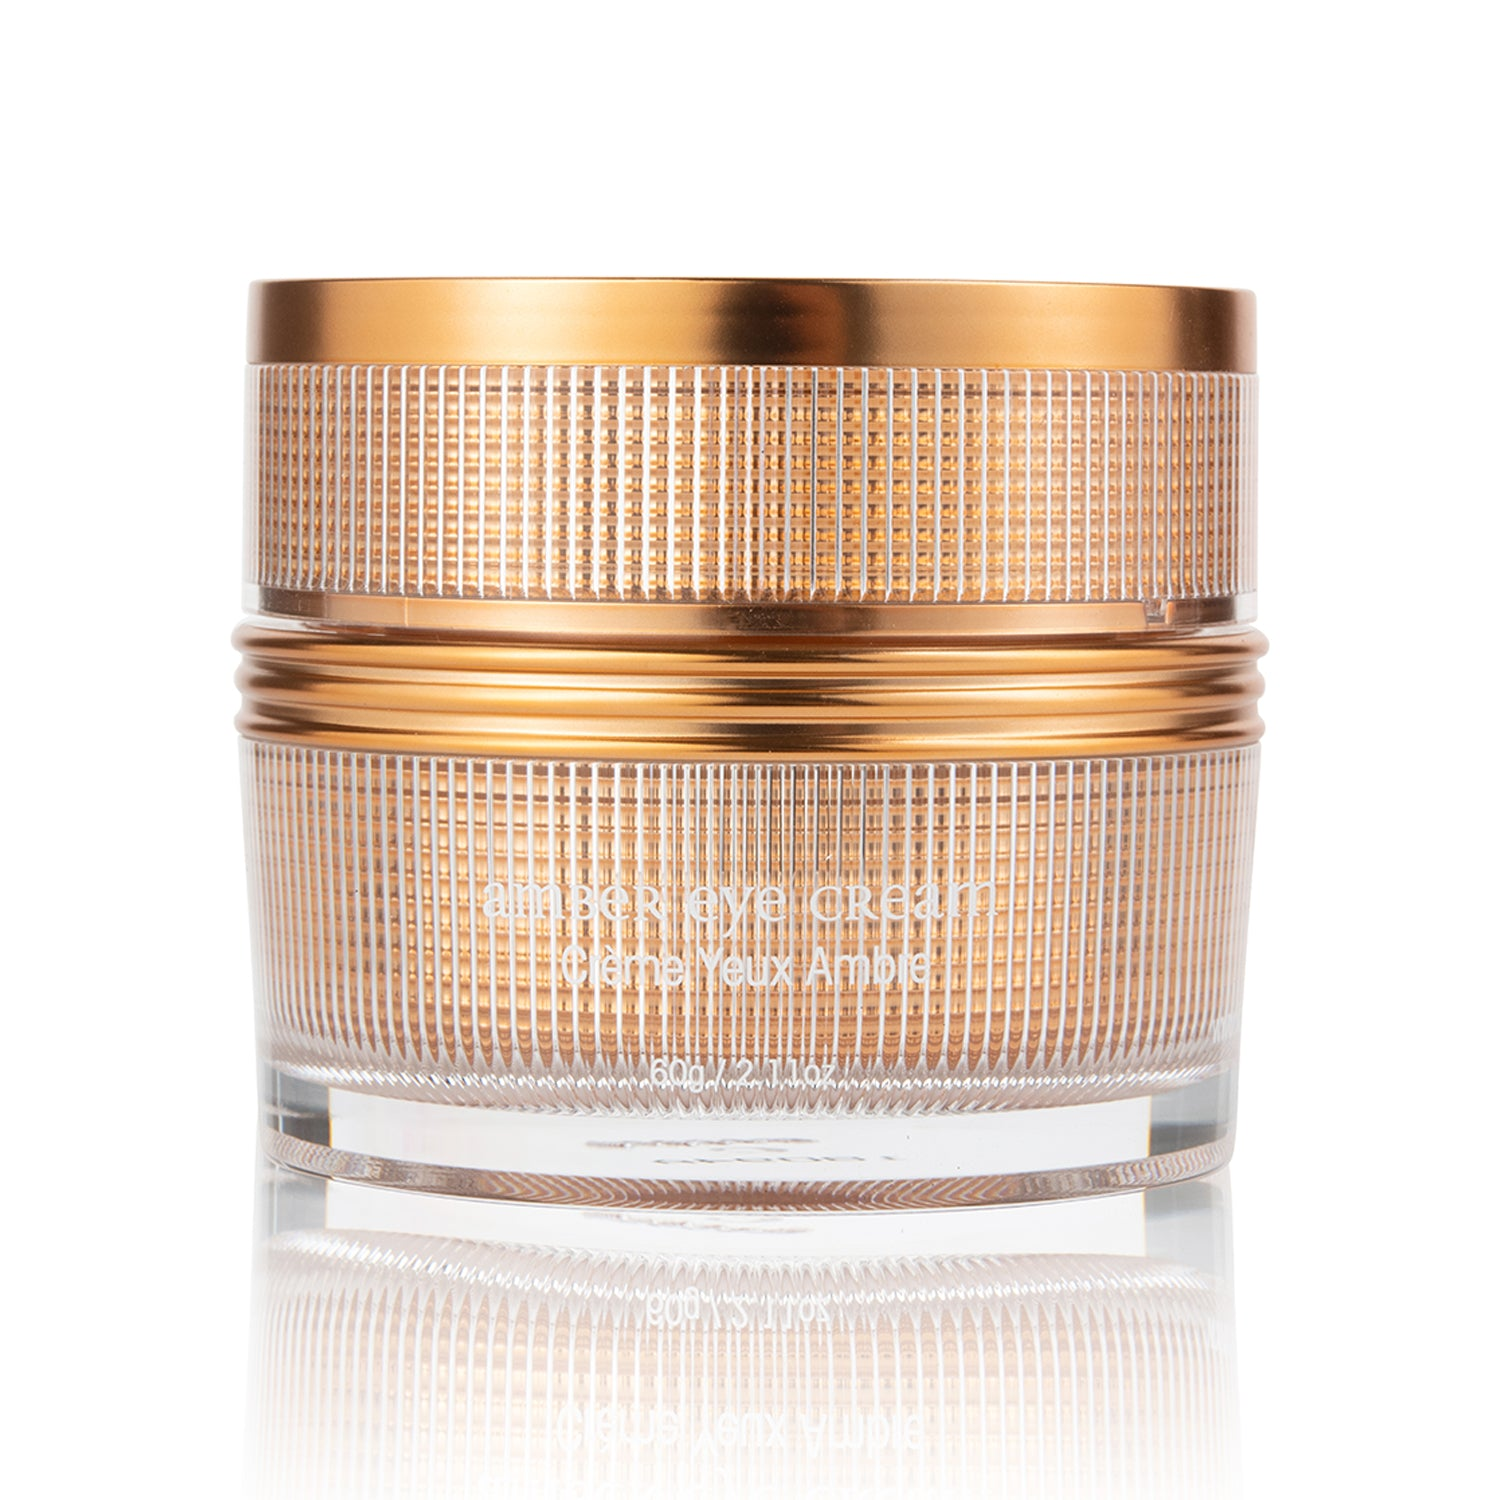 Lionesse Under Eye cream